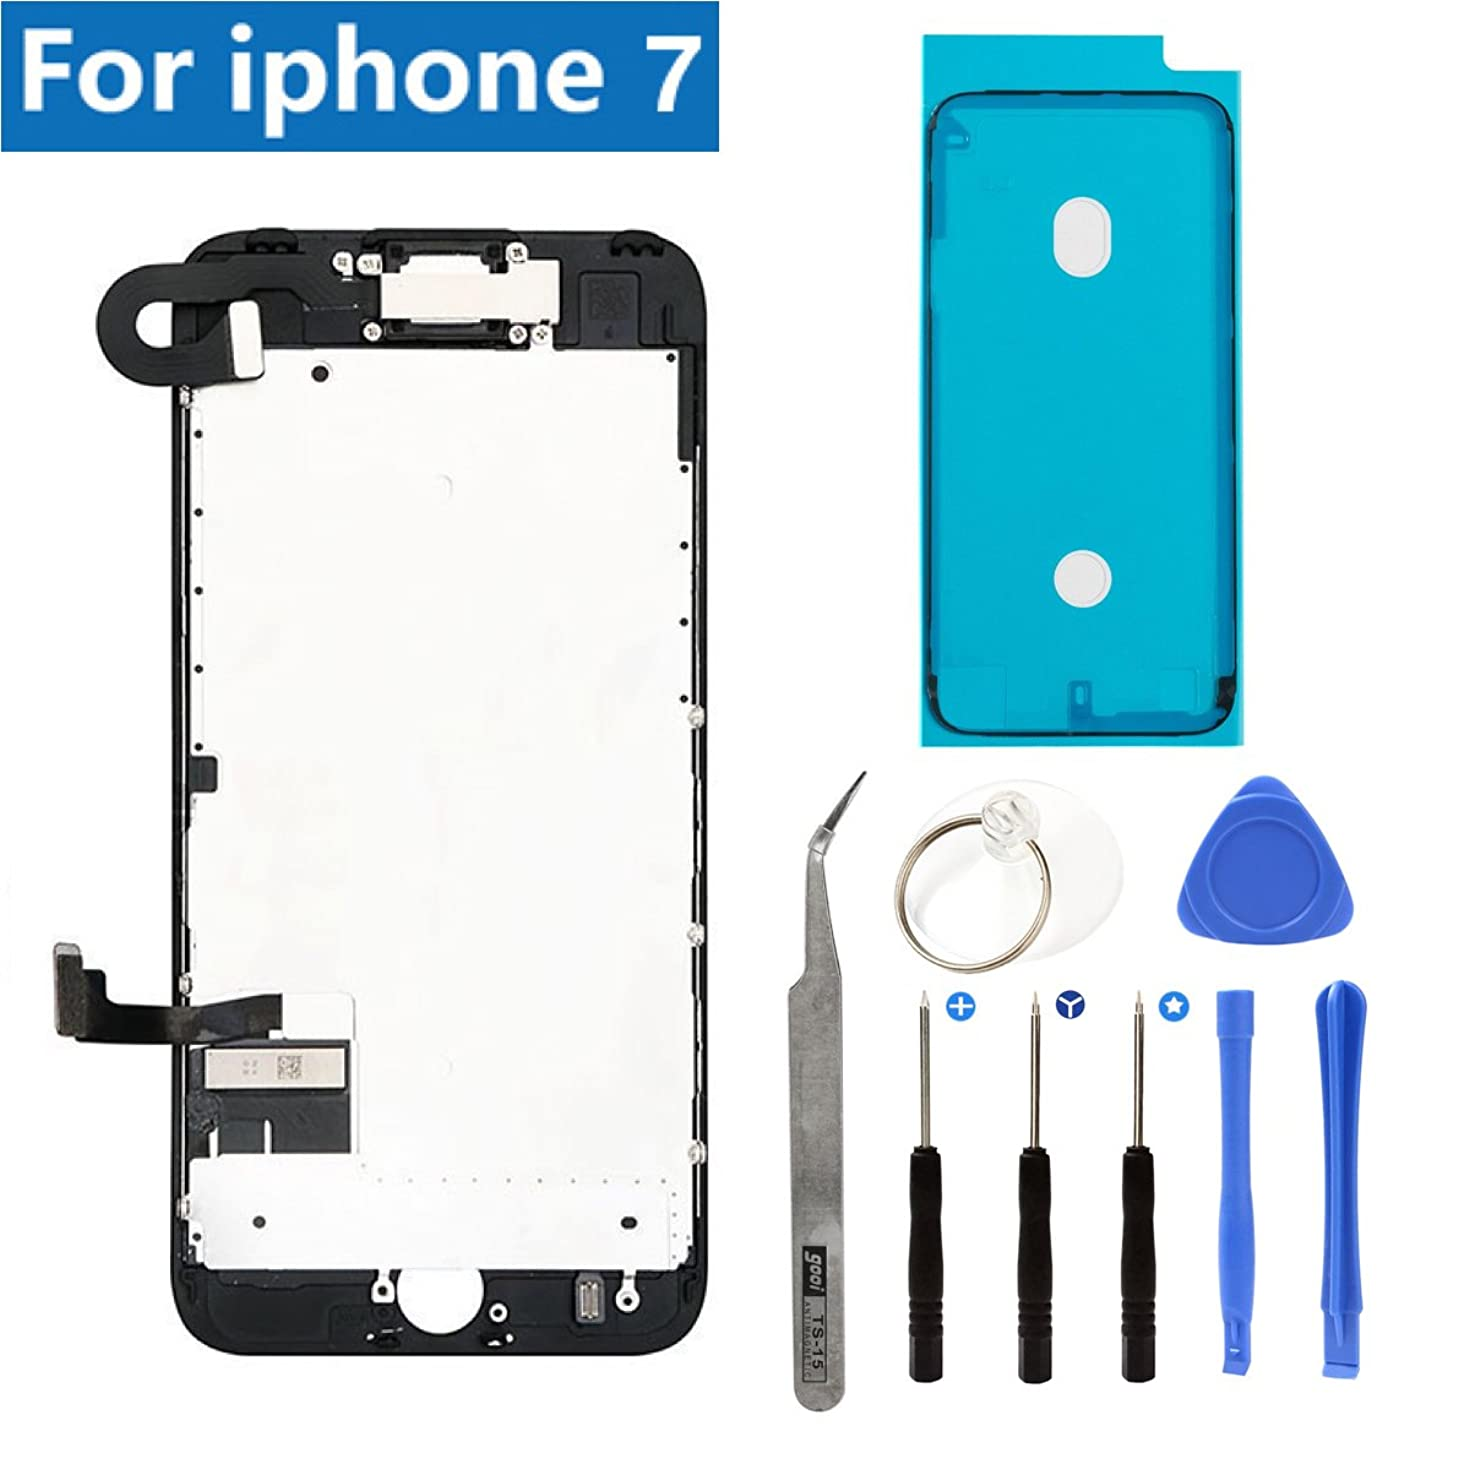 Full Screen Replacement LCD Touch Assembly Front Camera Ear Speaker Shield Plate with Frame Adhesive and Repair Tools for iPhone 7 4.7 inch (Black)